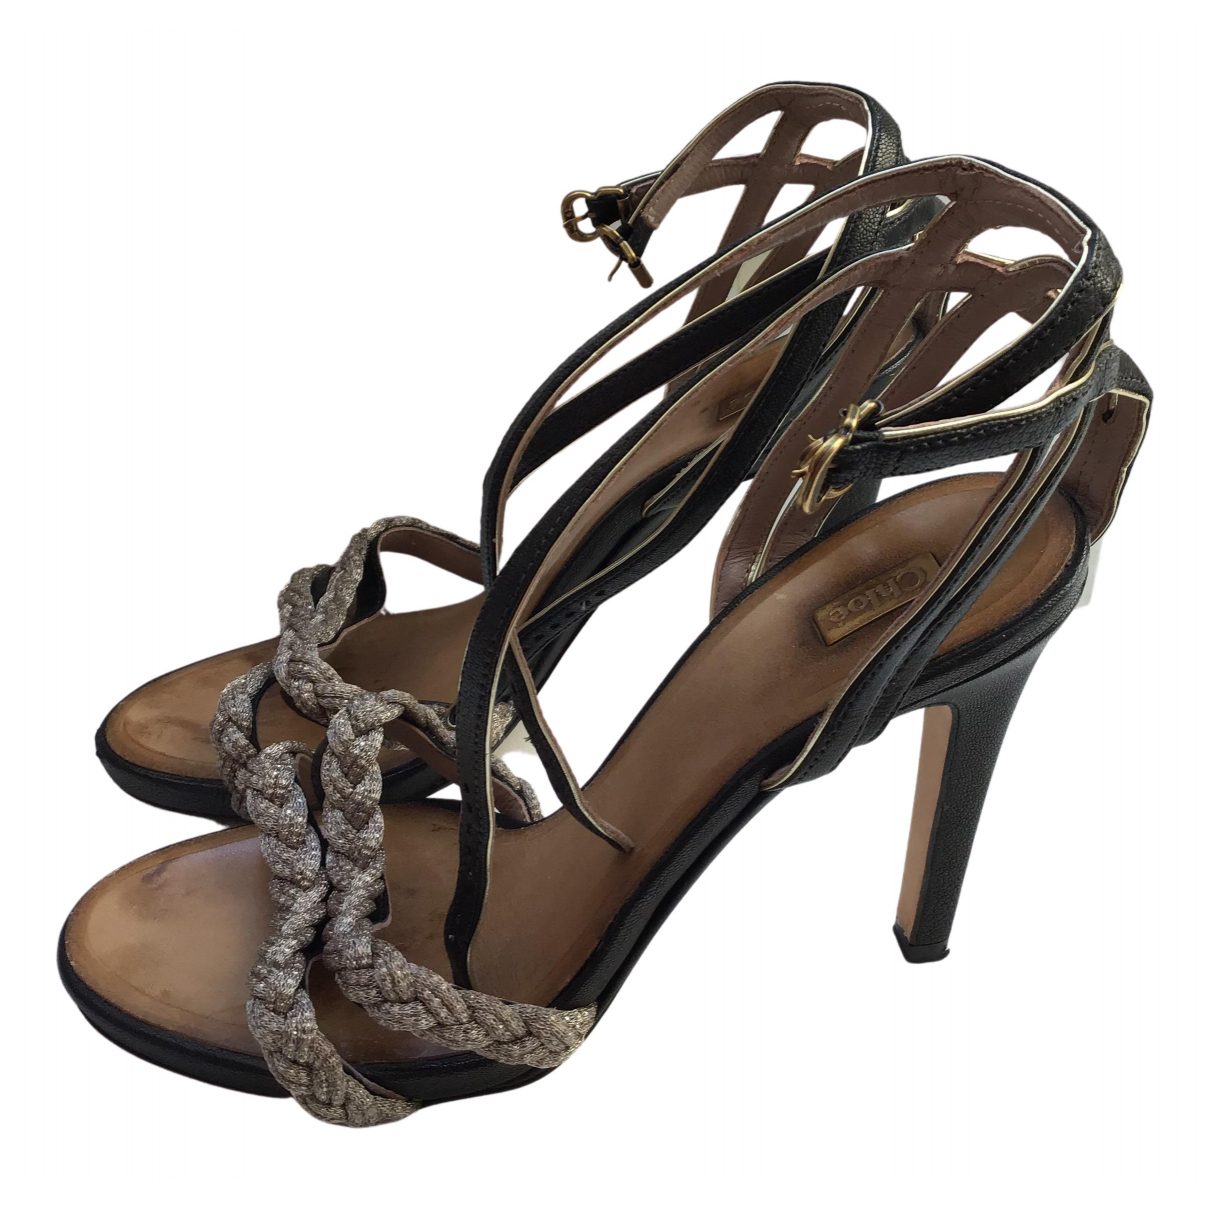 Chloé N Gold Leather Sandals for Women 39 EU